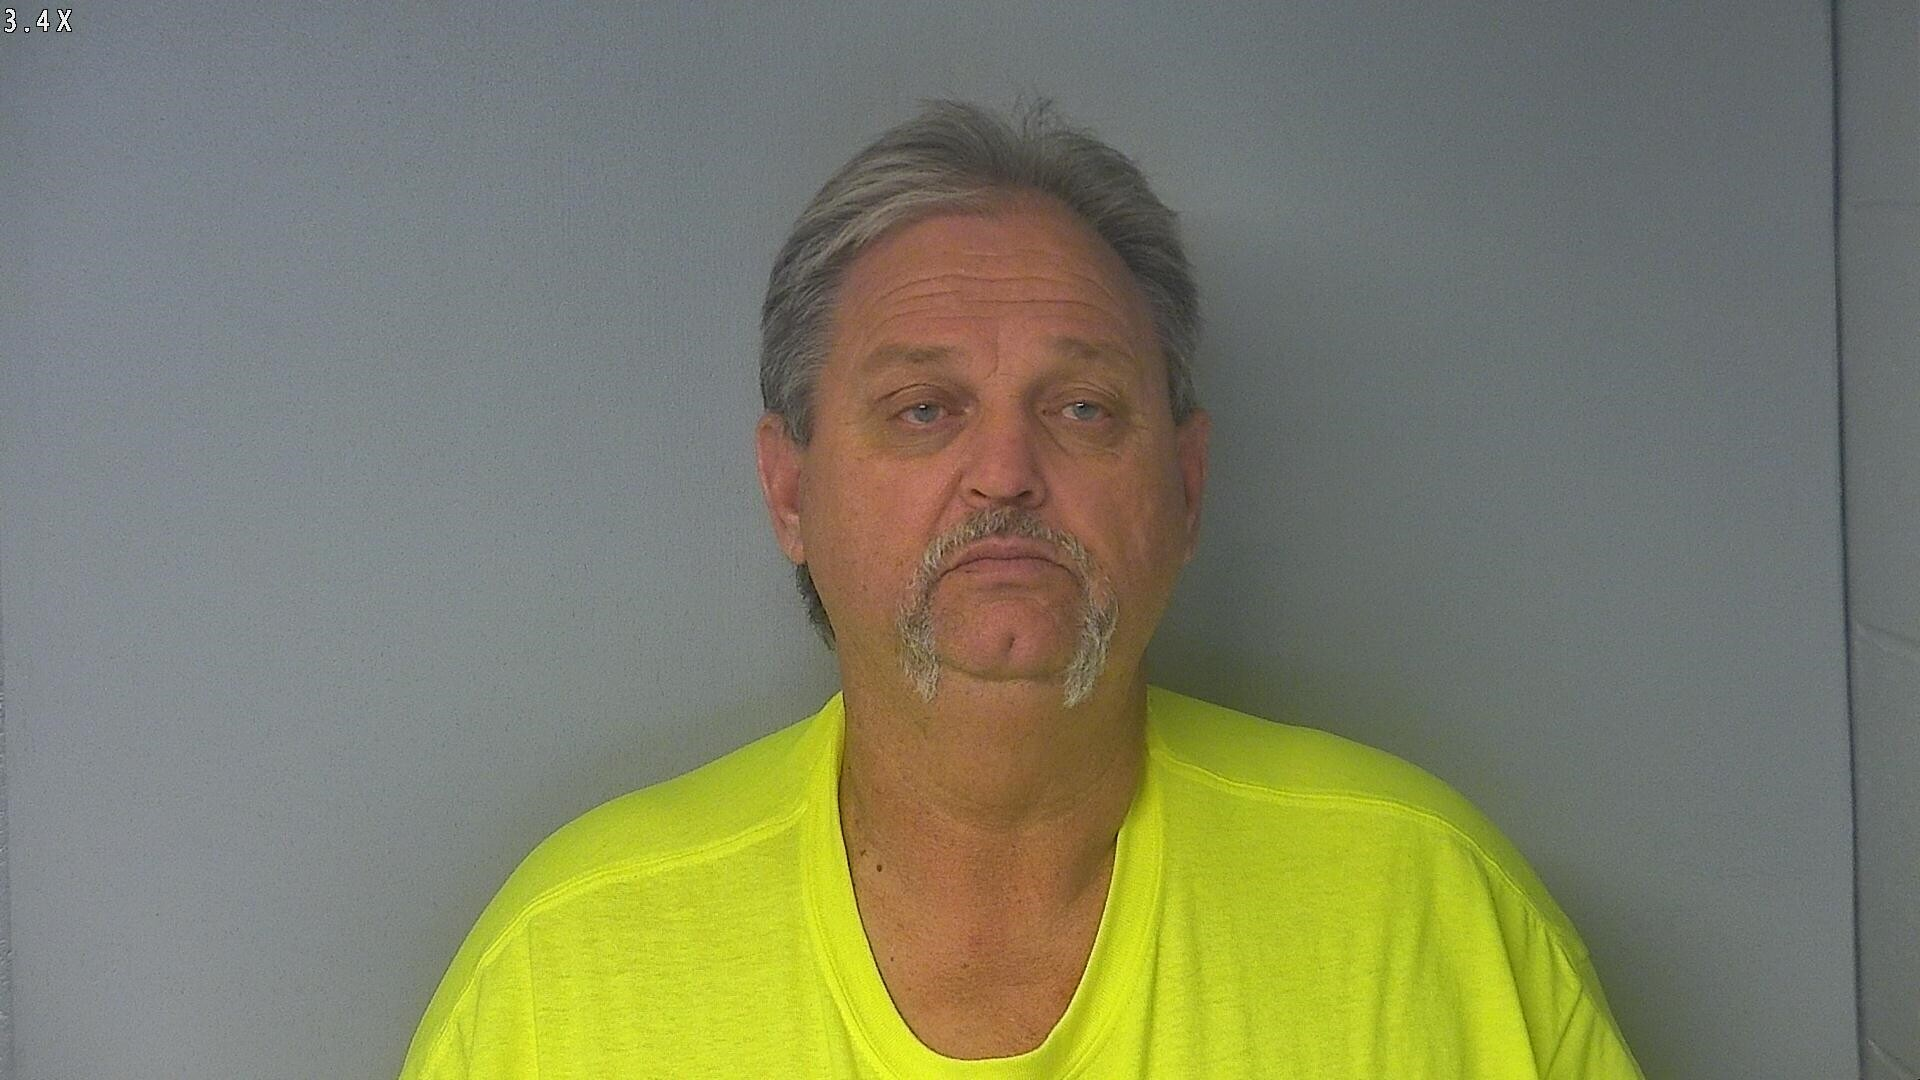 Photos: Second arrest made in hit-and-run death of York County bicyclist